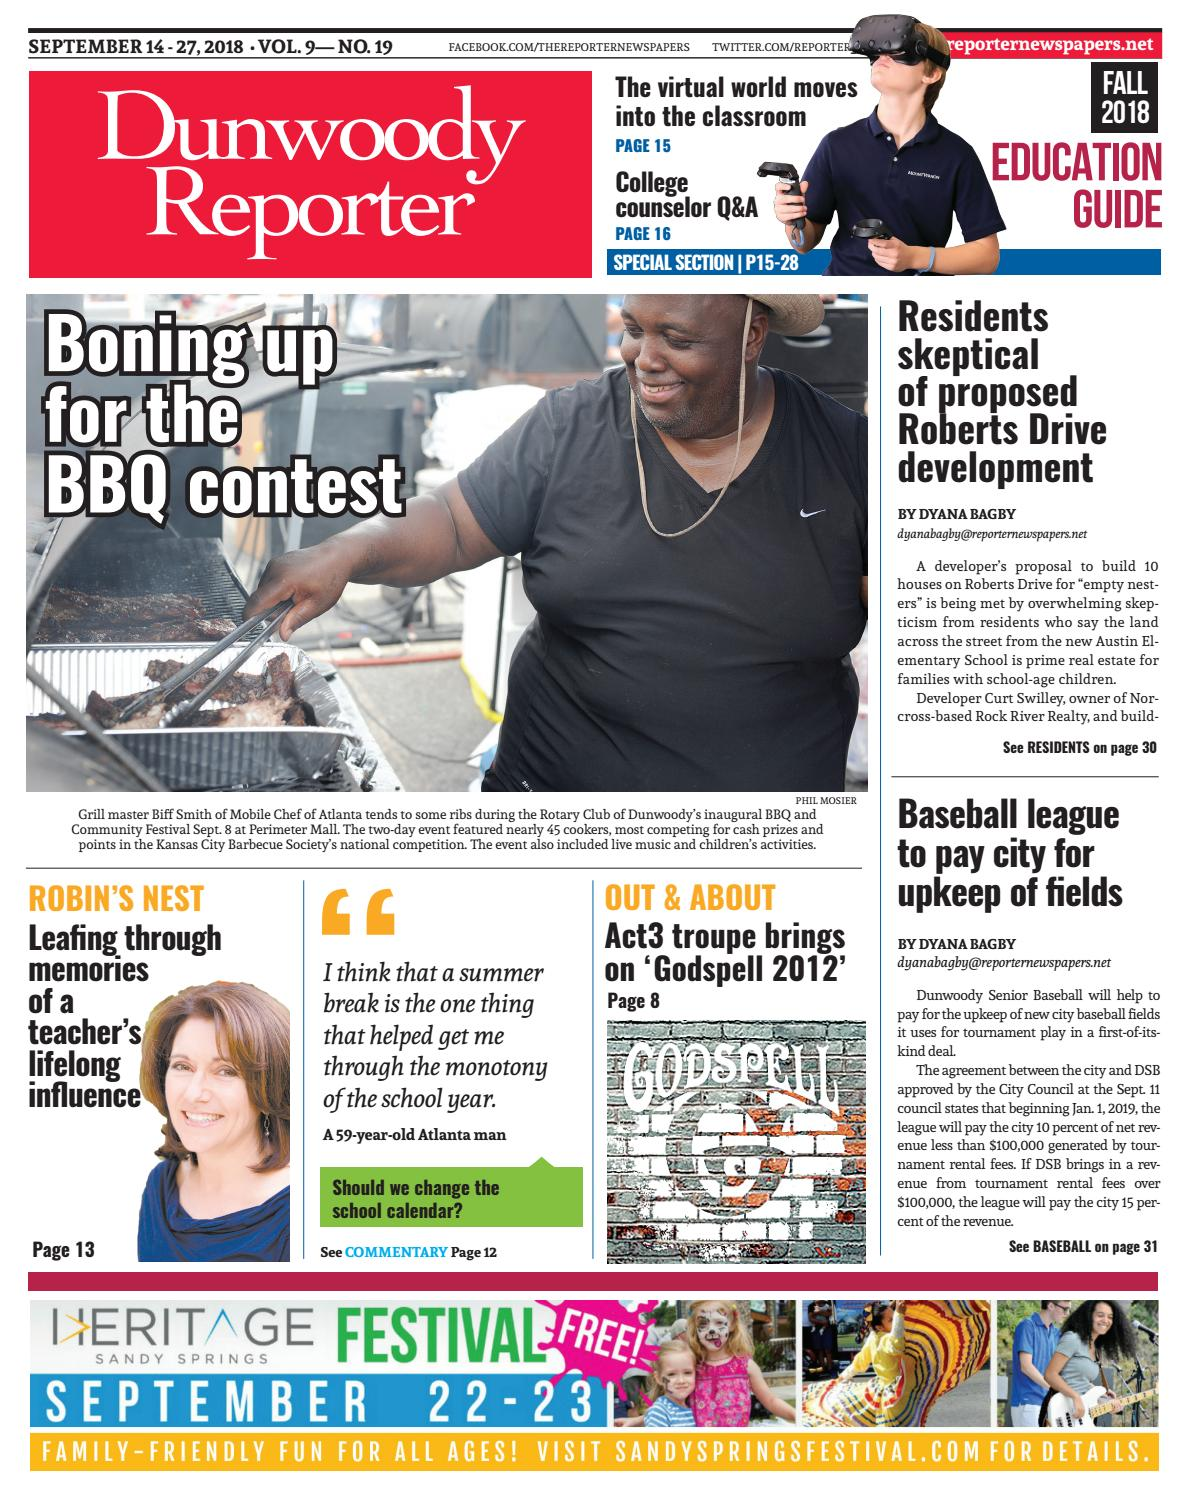 09-14-18 Dunwoody Reporter by Reporter Newspapers - issuu